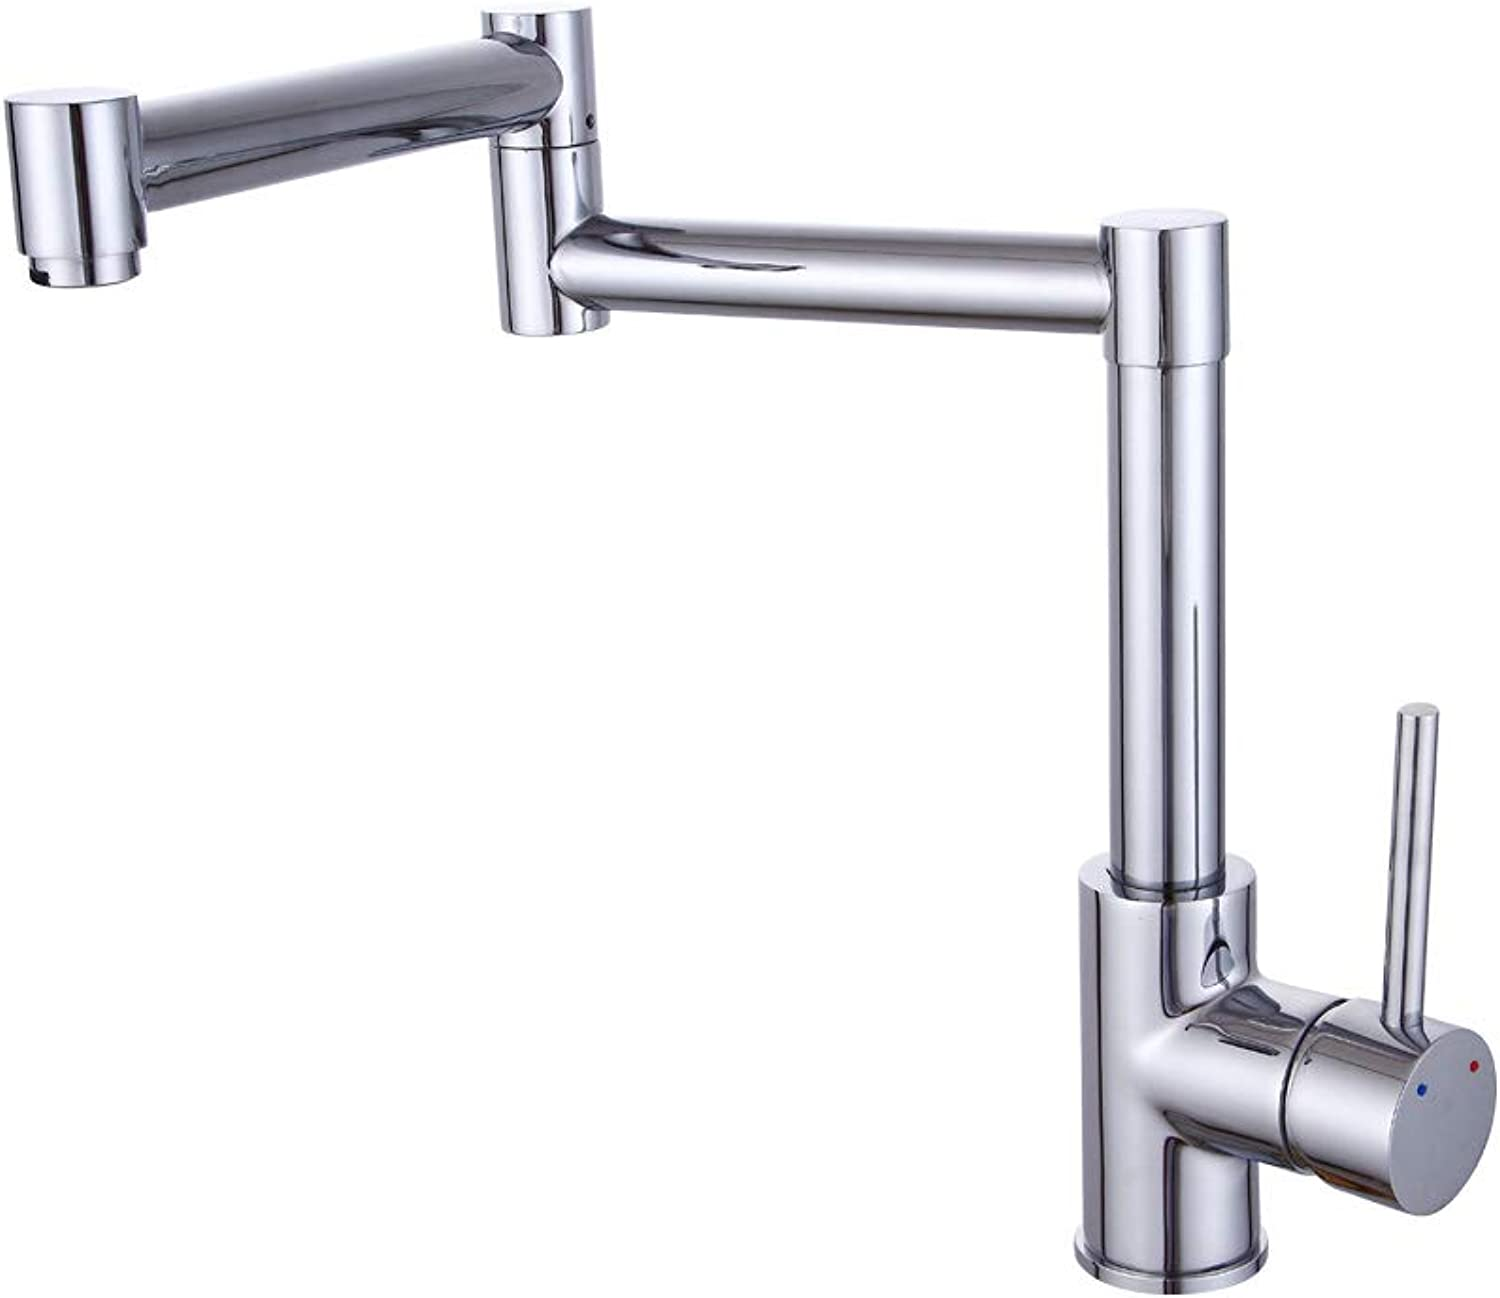 Hlluya Professional Sink Mixer Tap Kitchen Faucet The Space Aluminum Sink Washing Dishes in The Kitchen Sink Faucet Cold Water tap to Rotate The Faucet Janitorial & Sanitation Supplies Bathroom Sink Faucets